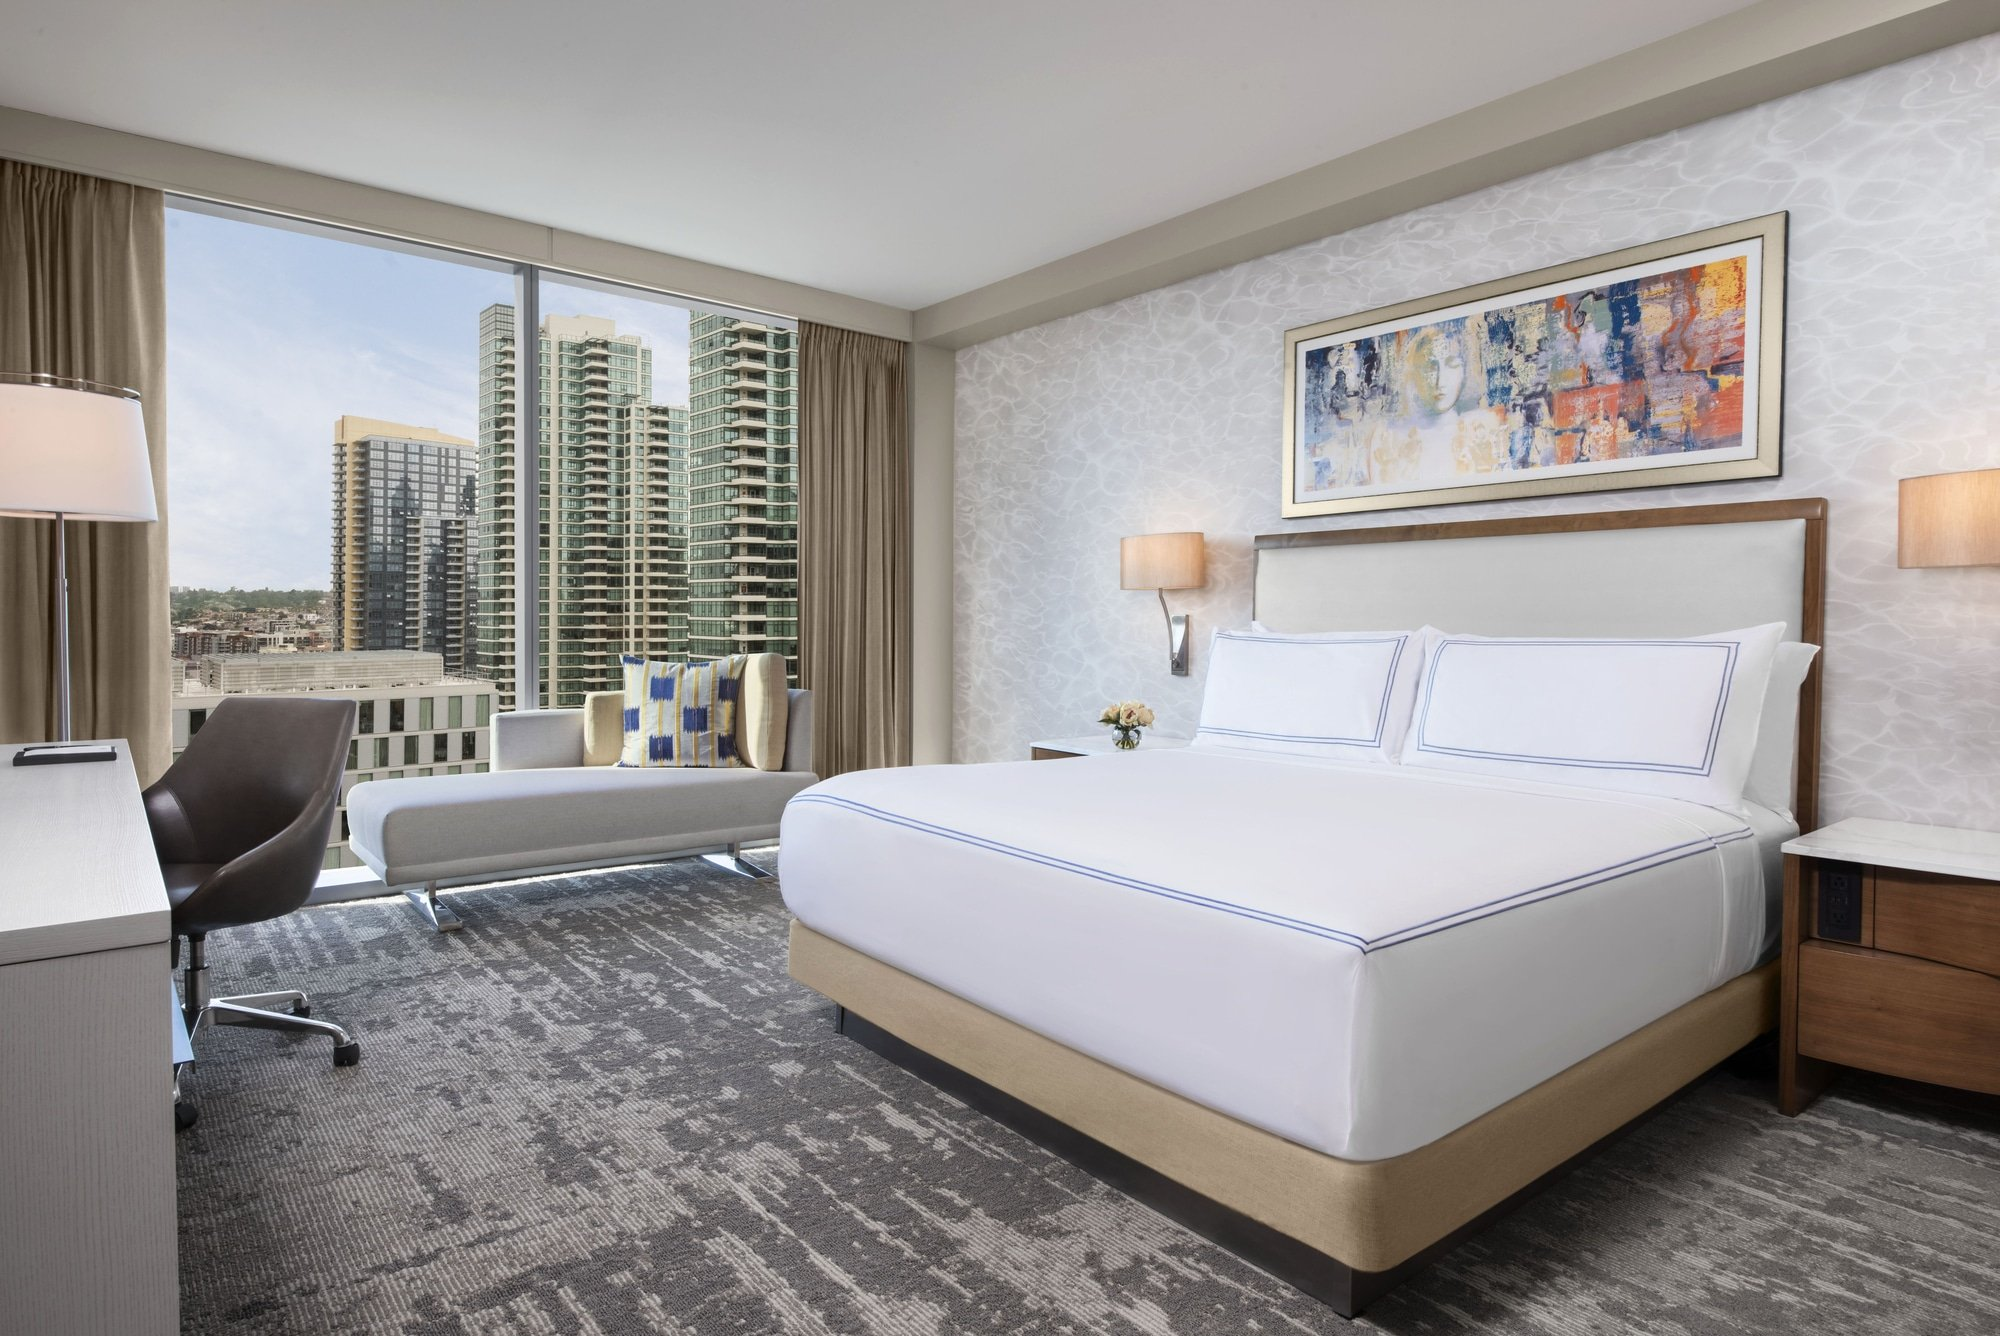 A king Club Room interior at InterContinental San Diego with a city view.